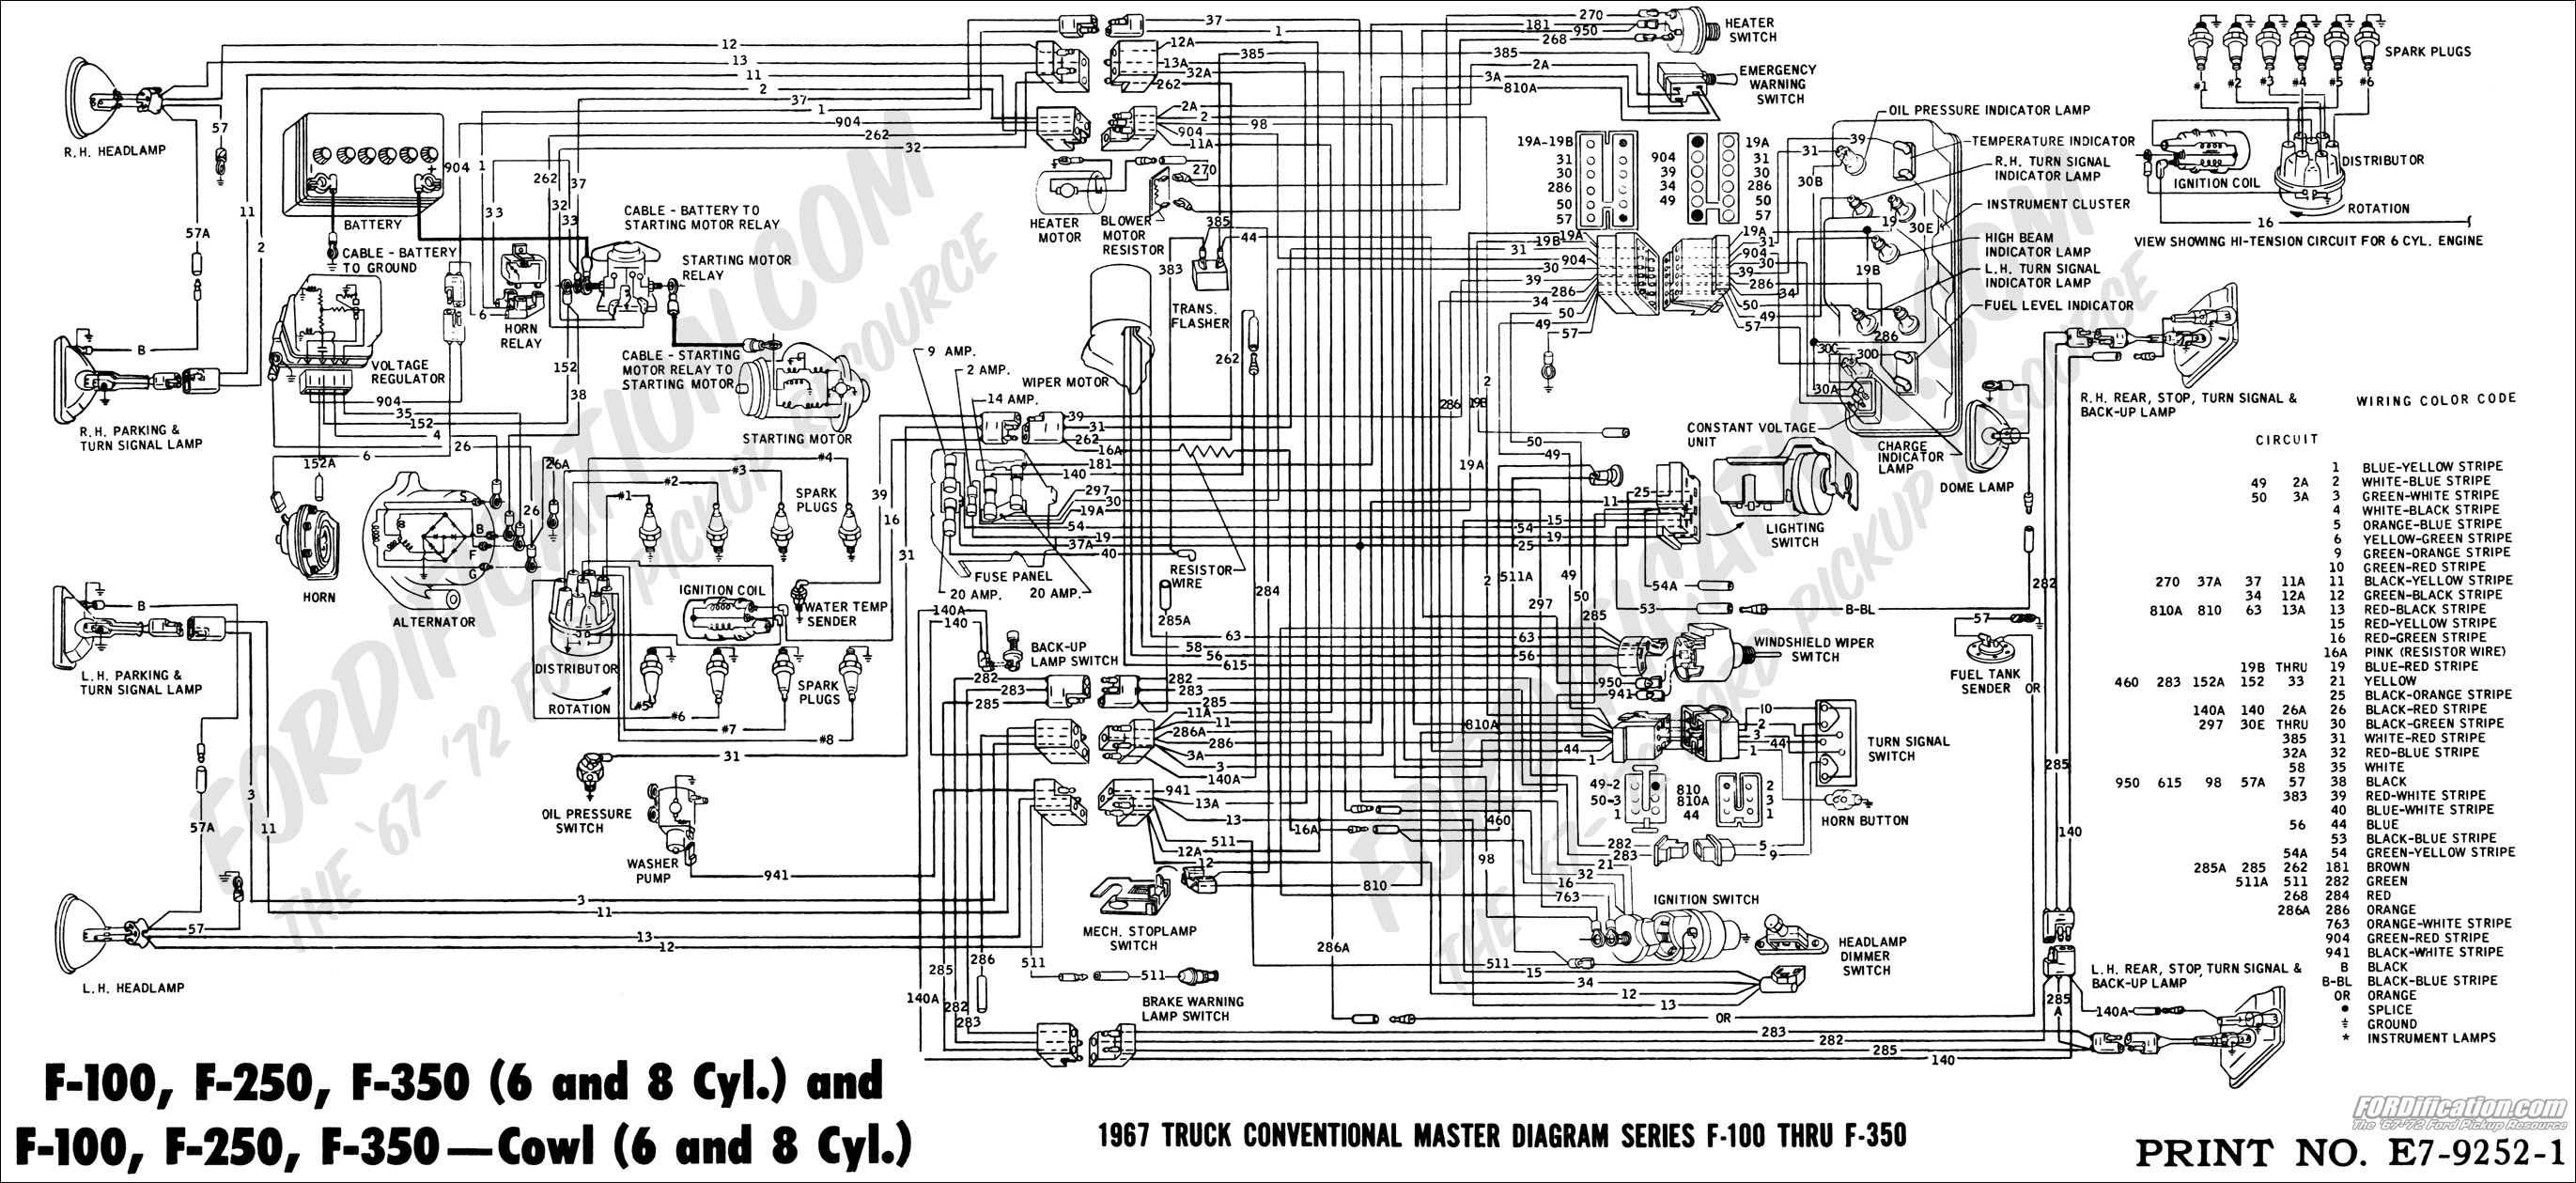 71 Ford Pickup Wiring Diagrams | Wiring Diagram  Ford F Alternator Wiring Diagram on ford f150 wiring diagram, 1971 ford f100 power steering, 1946 ford truck wiring diagram, 1971 ford f100 carburetor, 1970 ford wiring diagram, 1971 ford f100 tires, 1992 chevy silverado 1500 wiring diagram, 1971 ford f100 parts, ford 800 wiring diagram, basic ford solenoid wiring diagram, 1971 ford f100 specifications, 1971 ford f100 4x4, 1971 chevrolet camaro wiring diagram, 1971 chevy nova wiring diagram, 1955 ford wiring diagram, 1971 oldsmobile cutlass wiring diagram, ford f-250 wiring diagram, 1971 chevrolet el camino wiring diagram, 1971 ford f100 engine, 1966 ford wiring diagram,